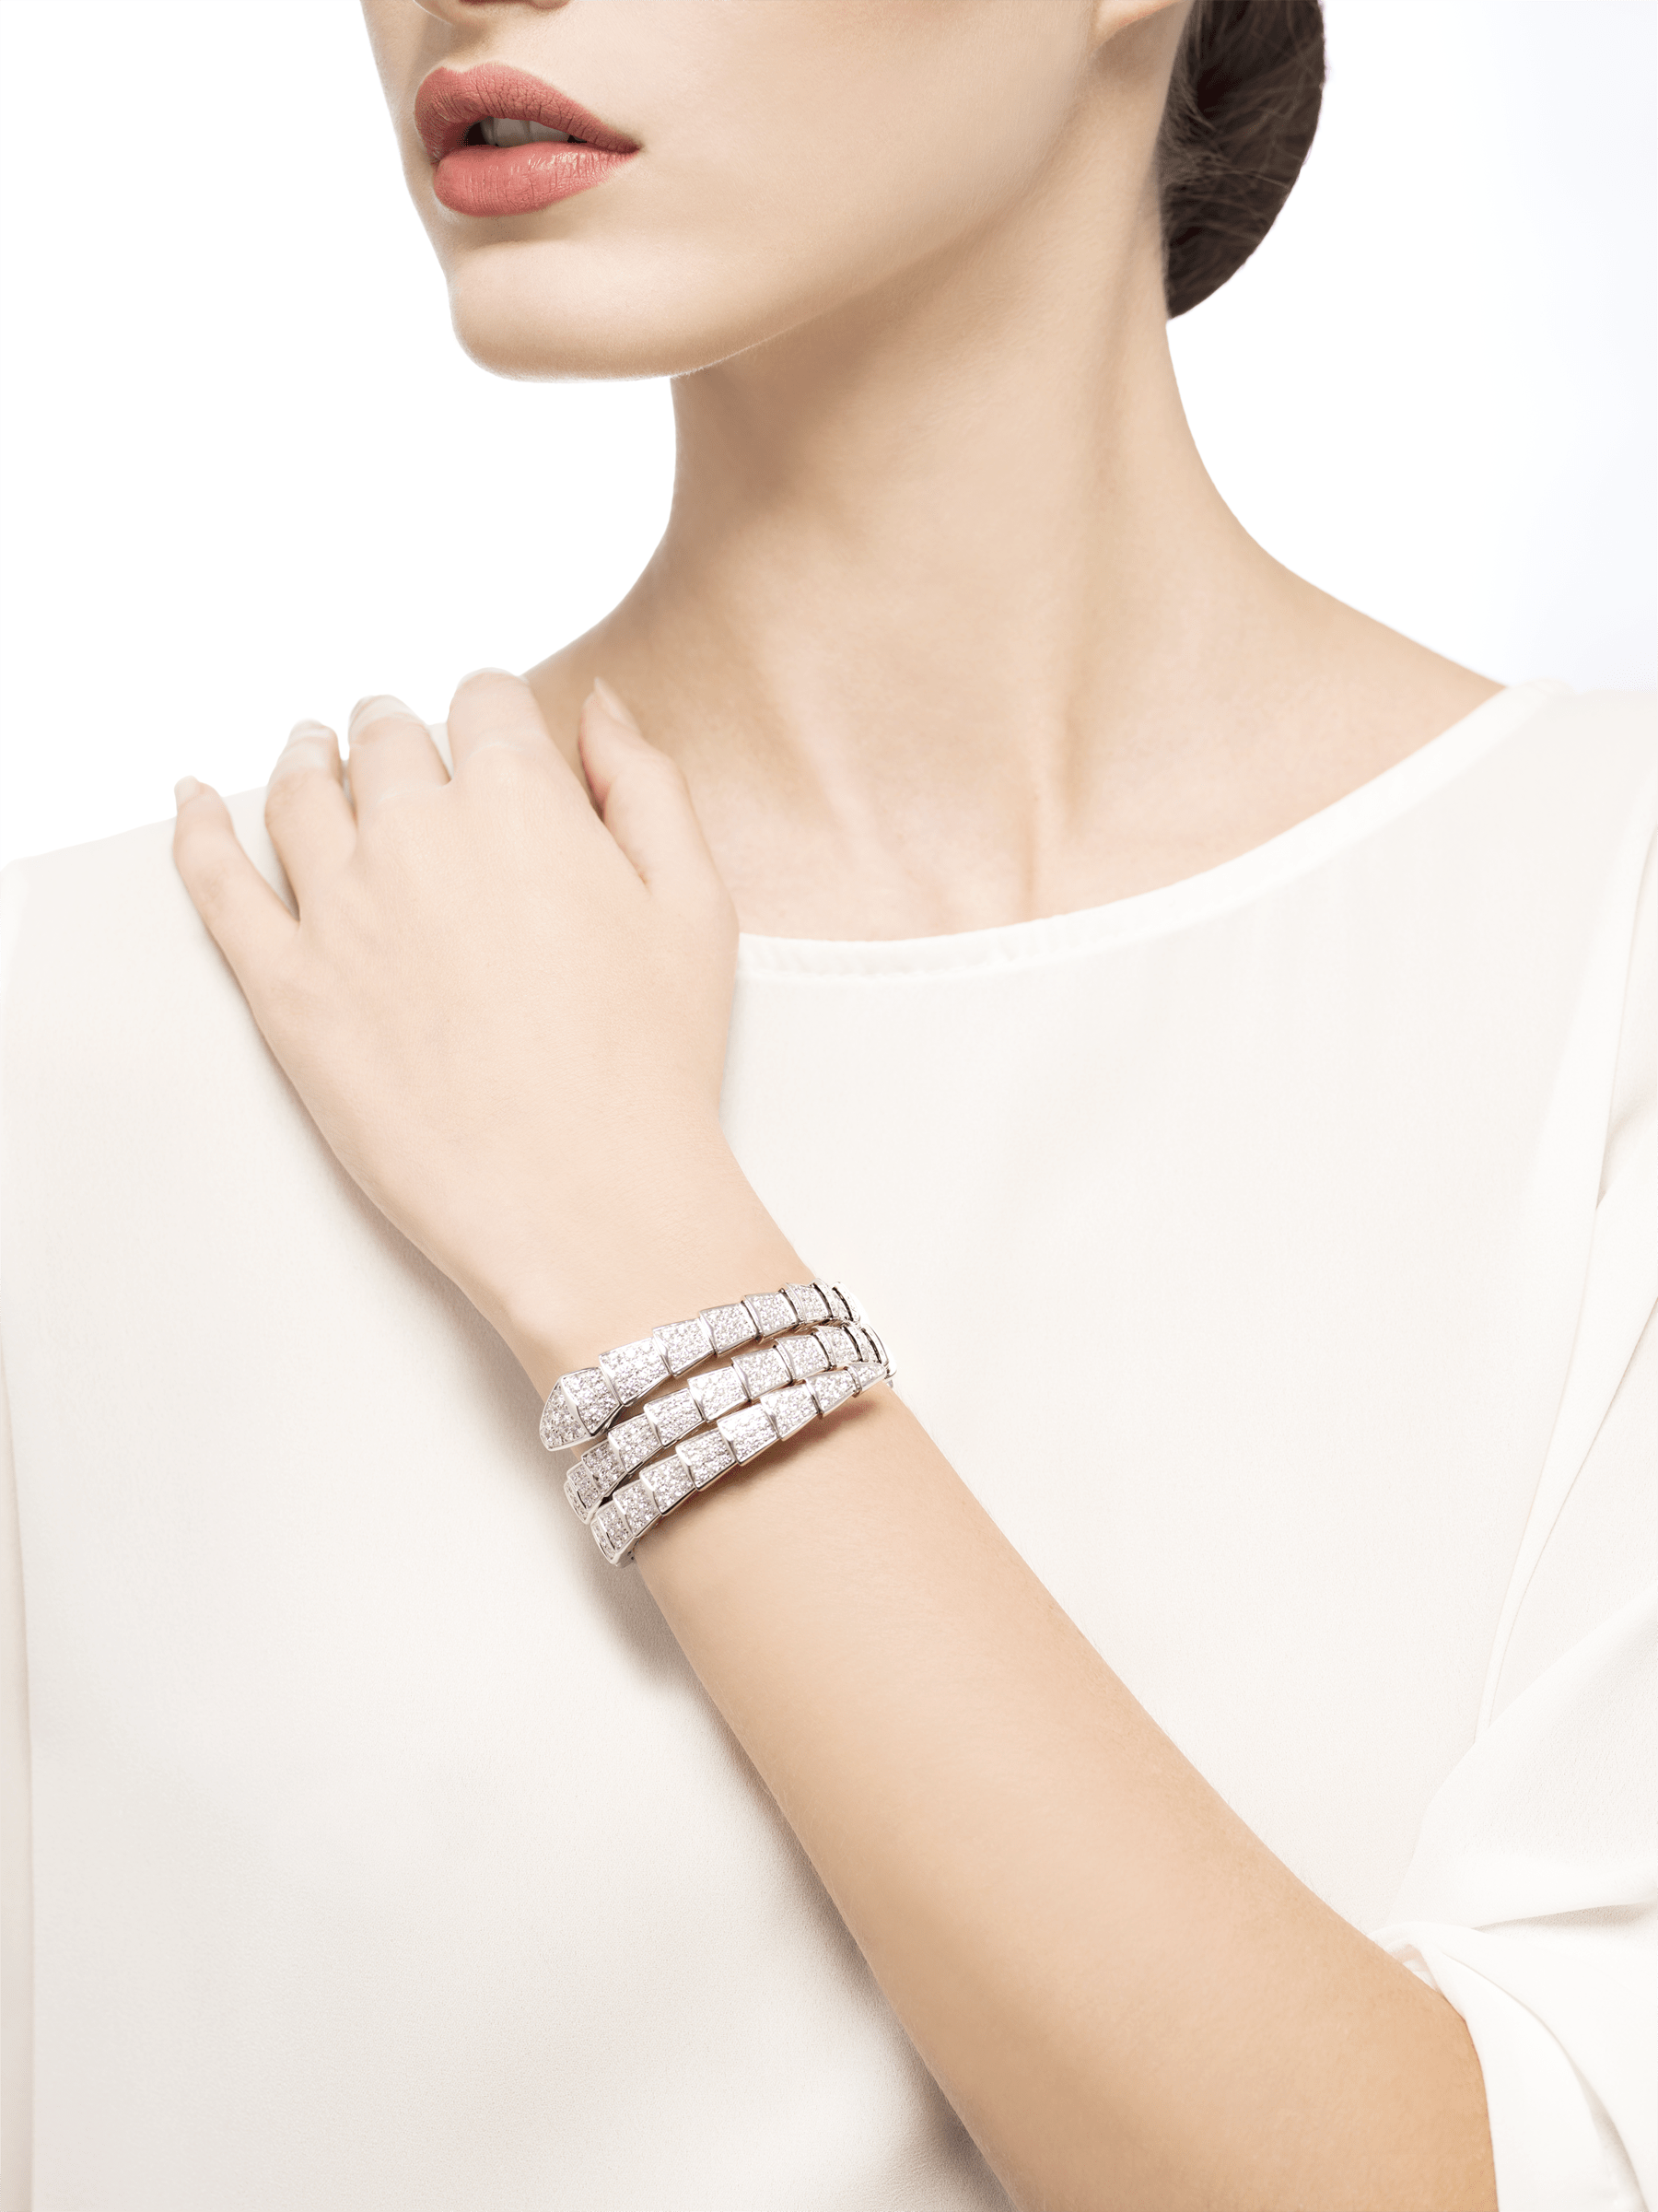 Serpenti two-coil bracelet in 18 kt white gold, set with full pavé diamonds. BR855118 image 2